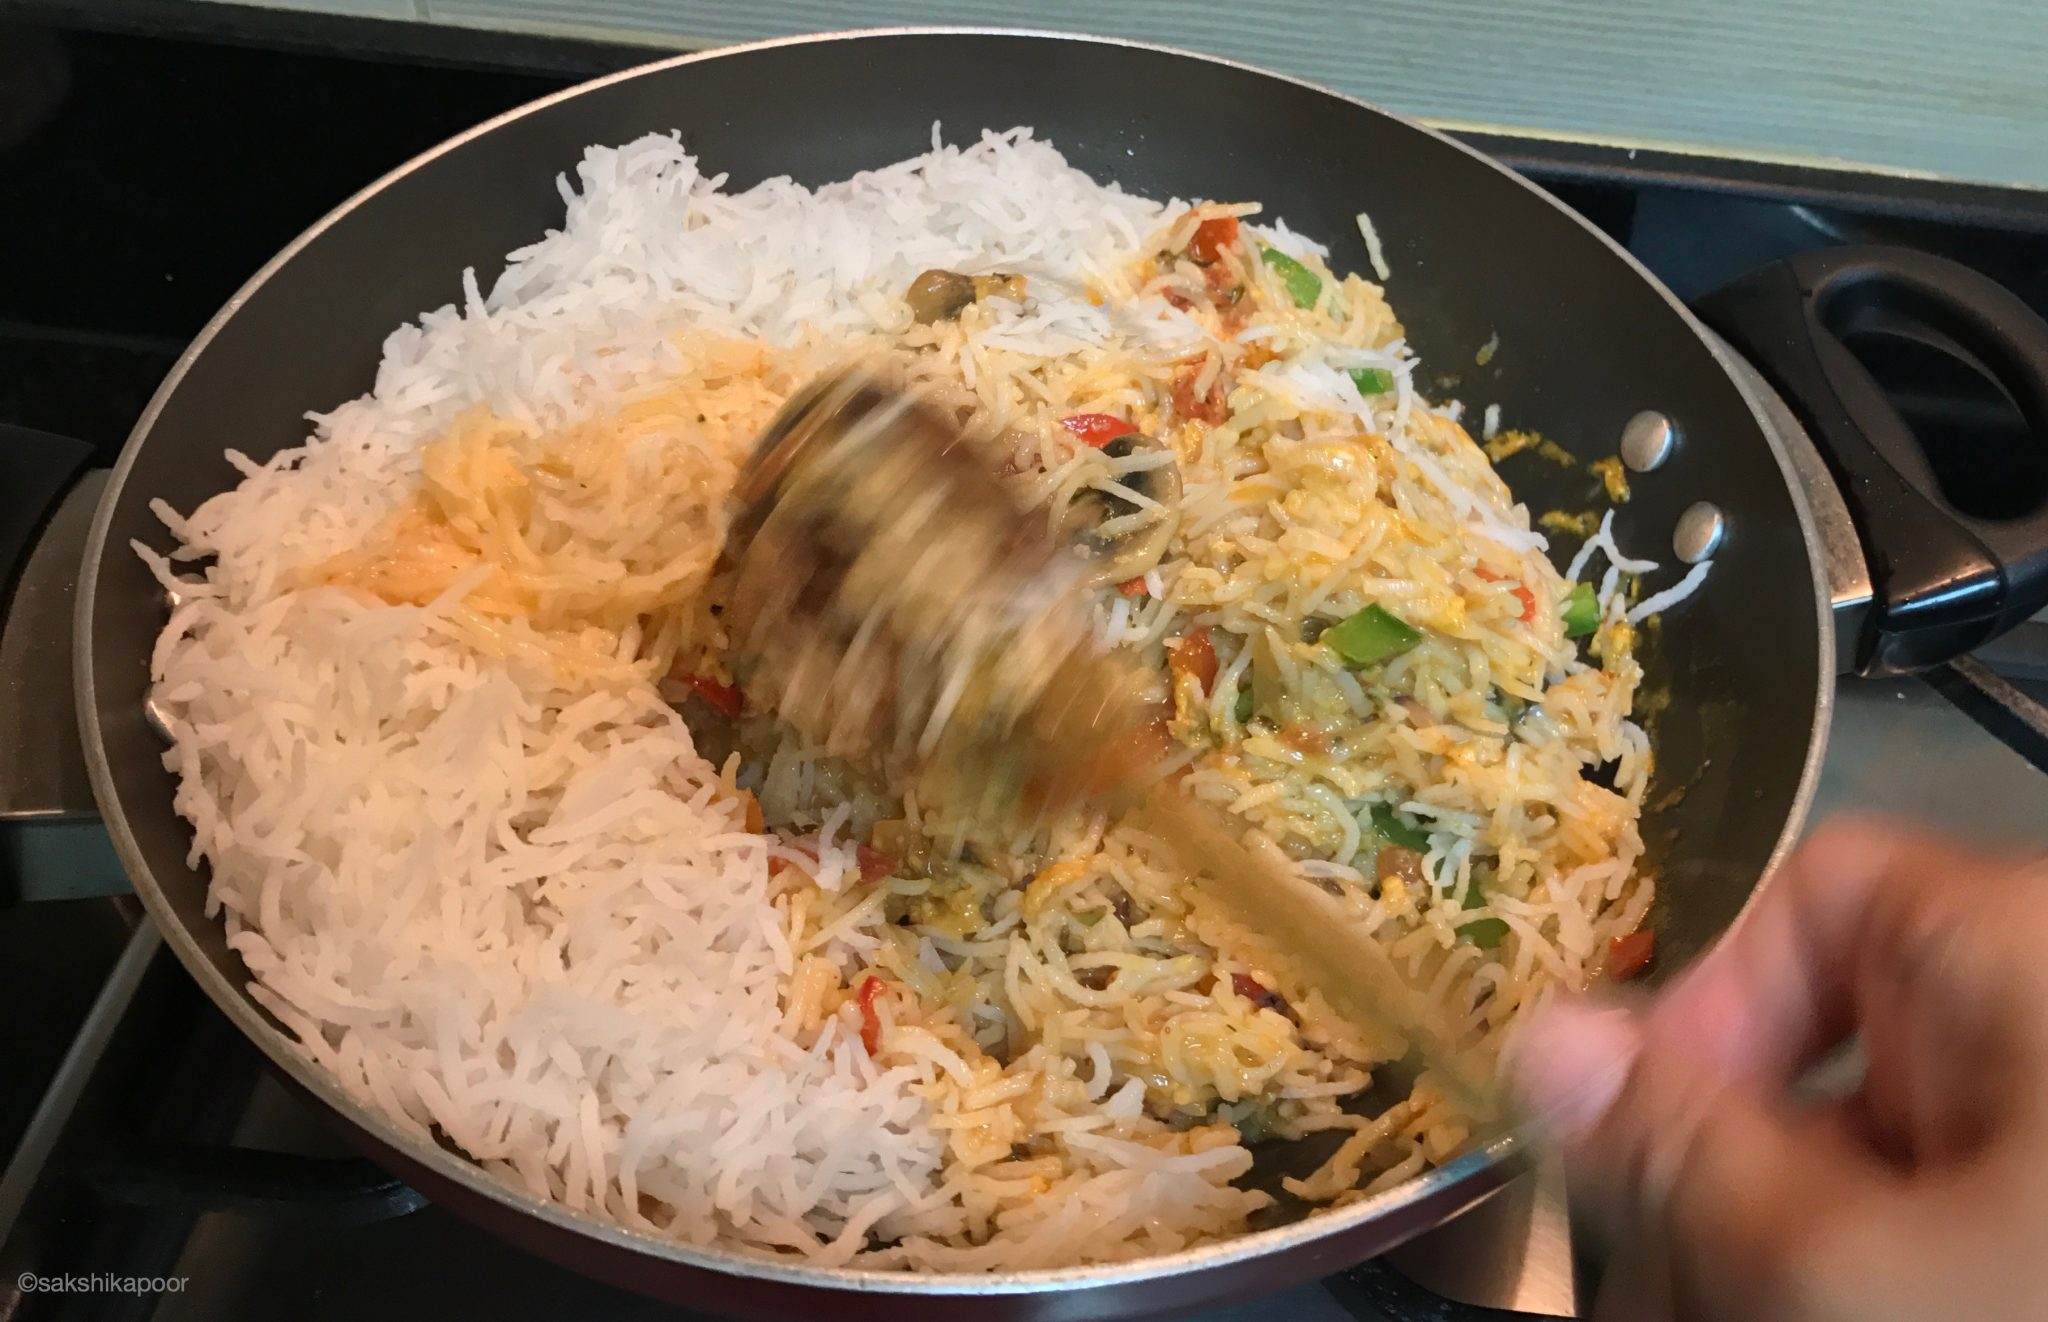 Easy herby egg rice with stir fried veggies recipe